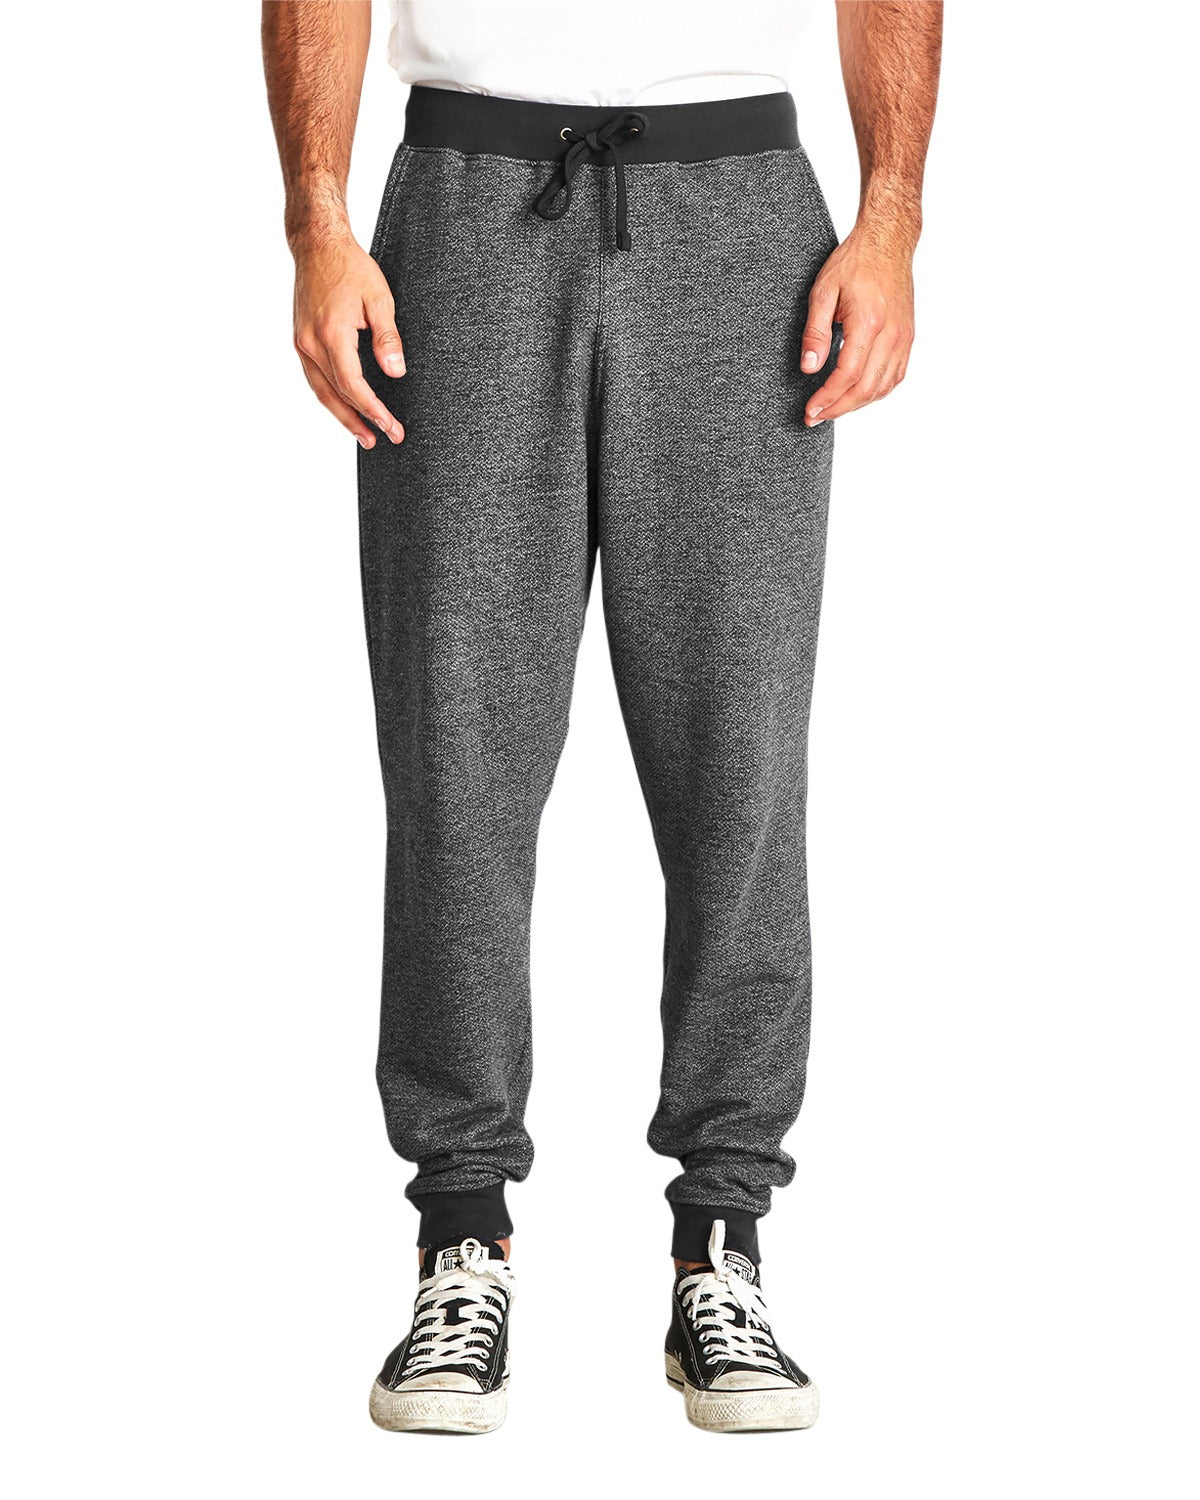 NEXT LEVEL MEN'S DENIM FLEECE JOGGER